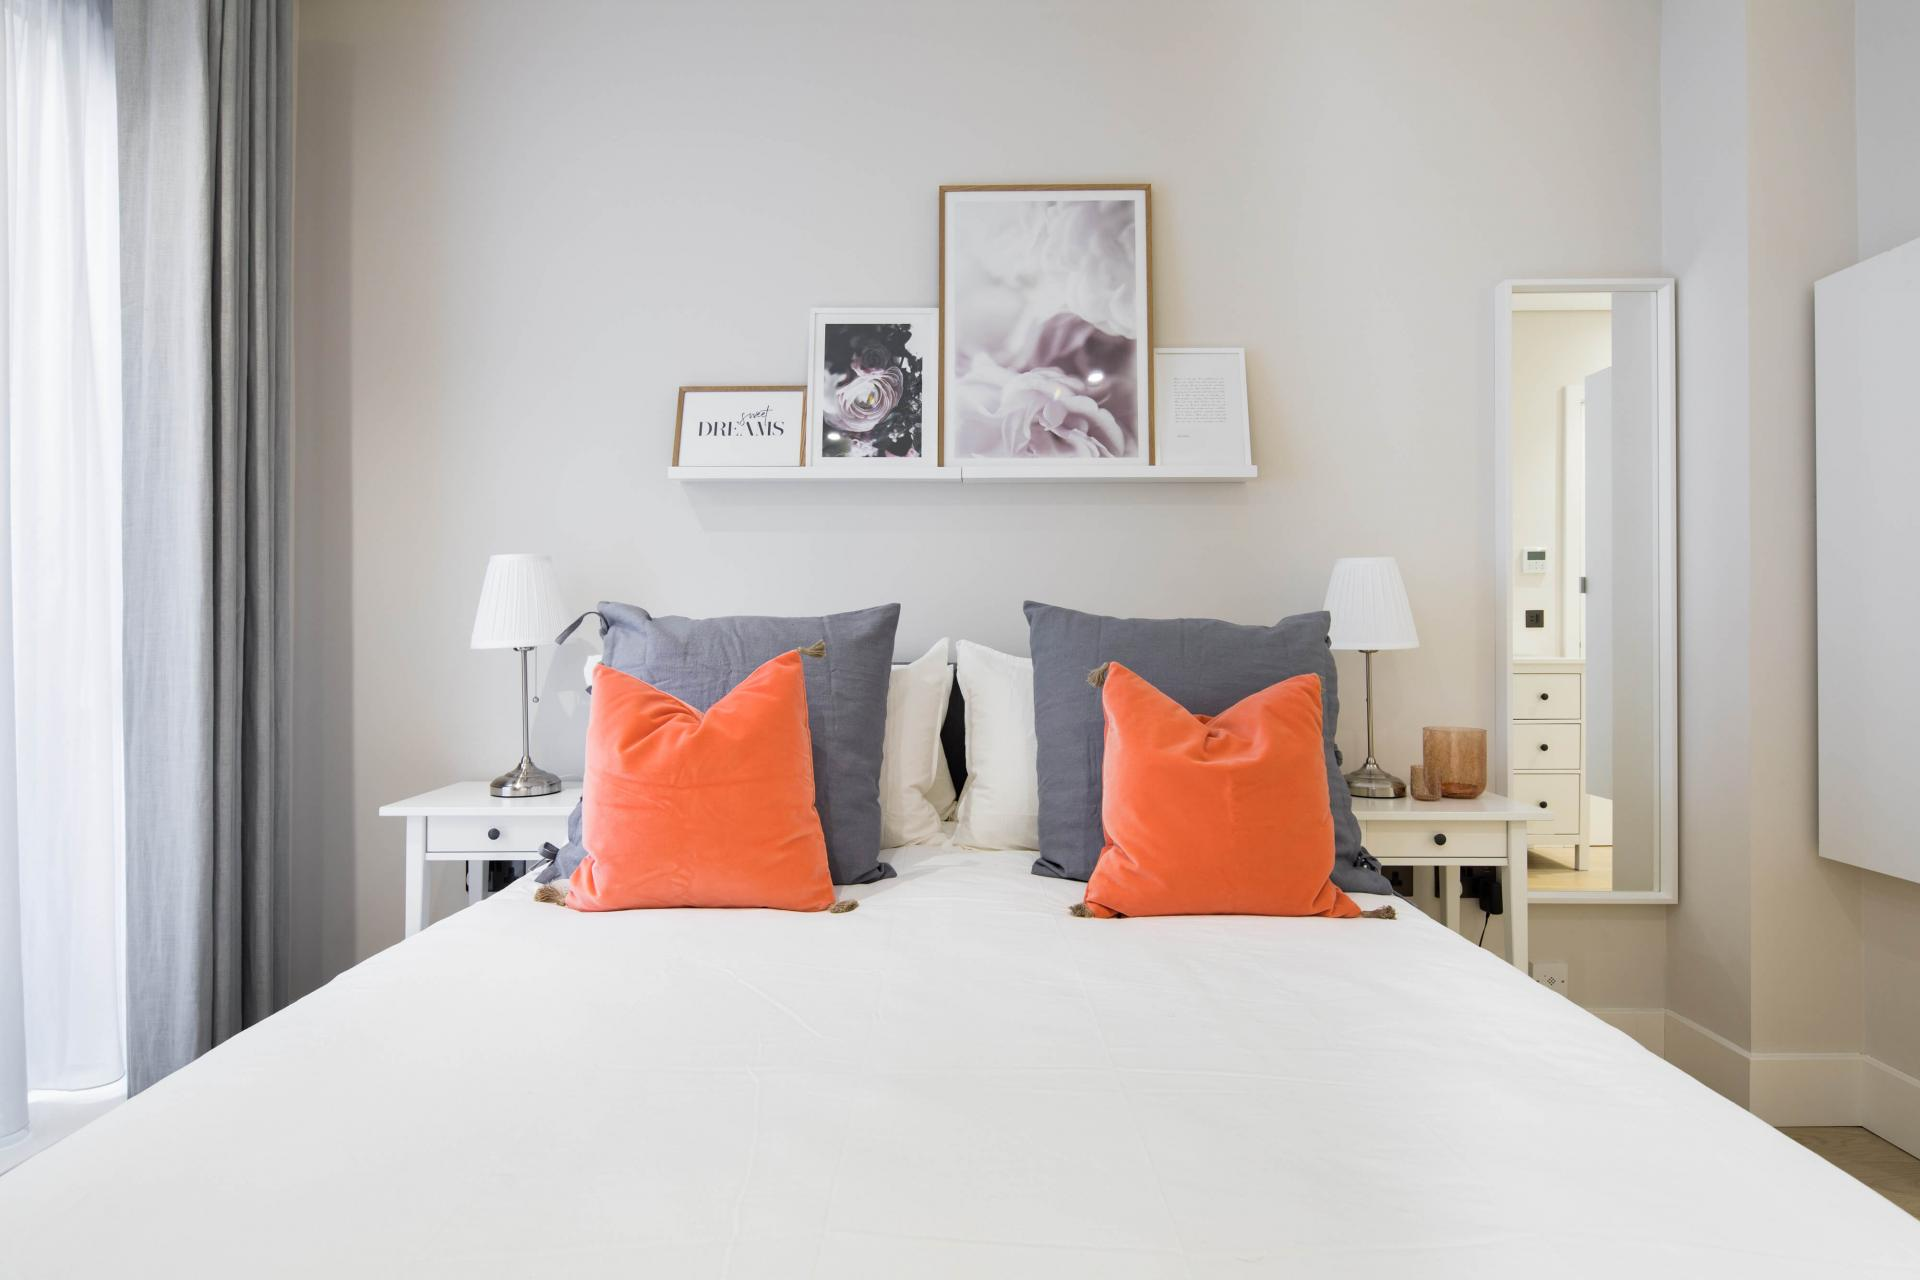 Bedding at Castle Lane Apartments, Westminster, London - Citybase Apartments